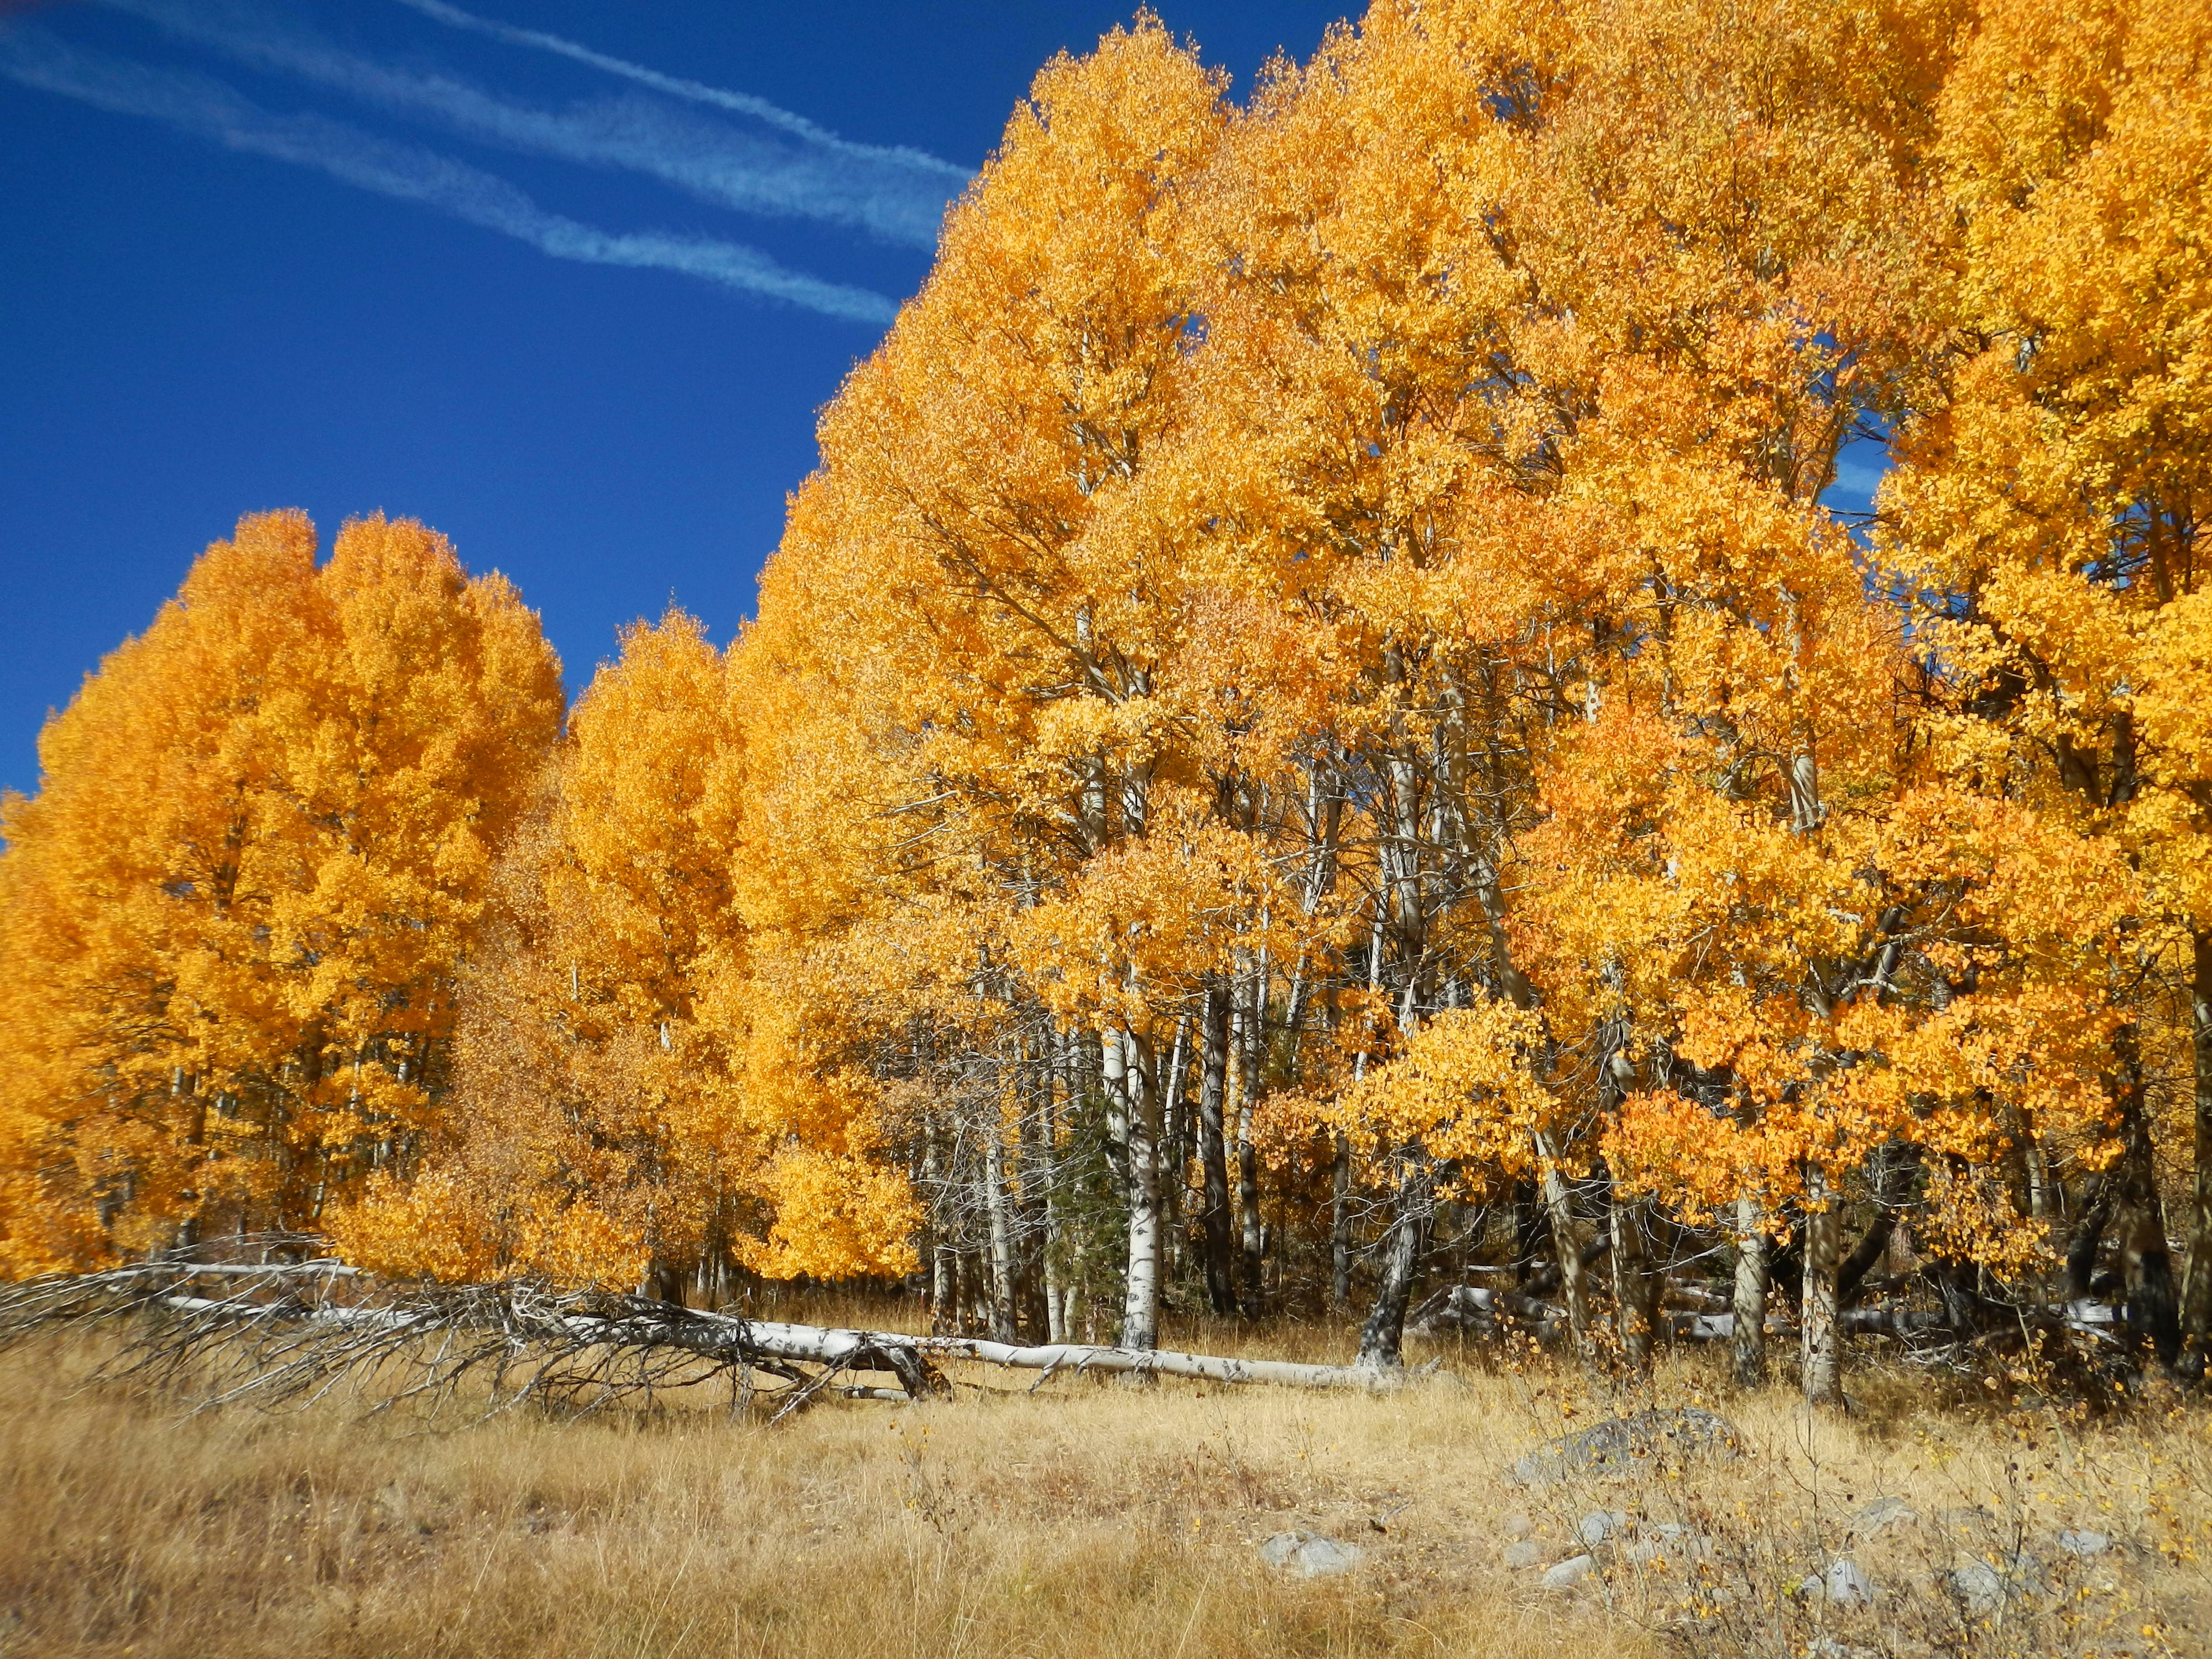 Aspen Trees in Autumn with blue sky and fence